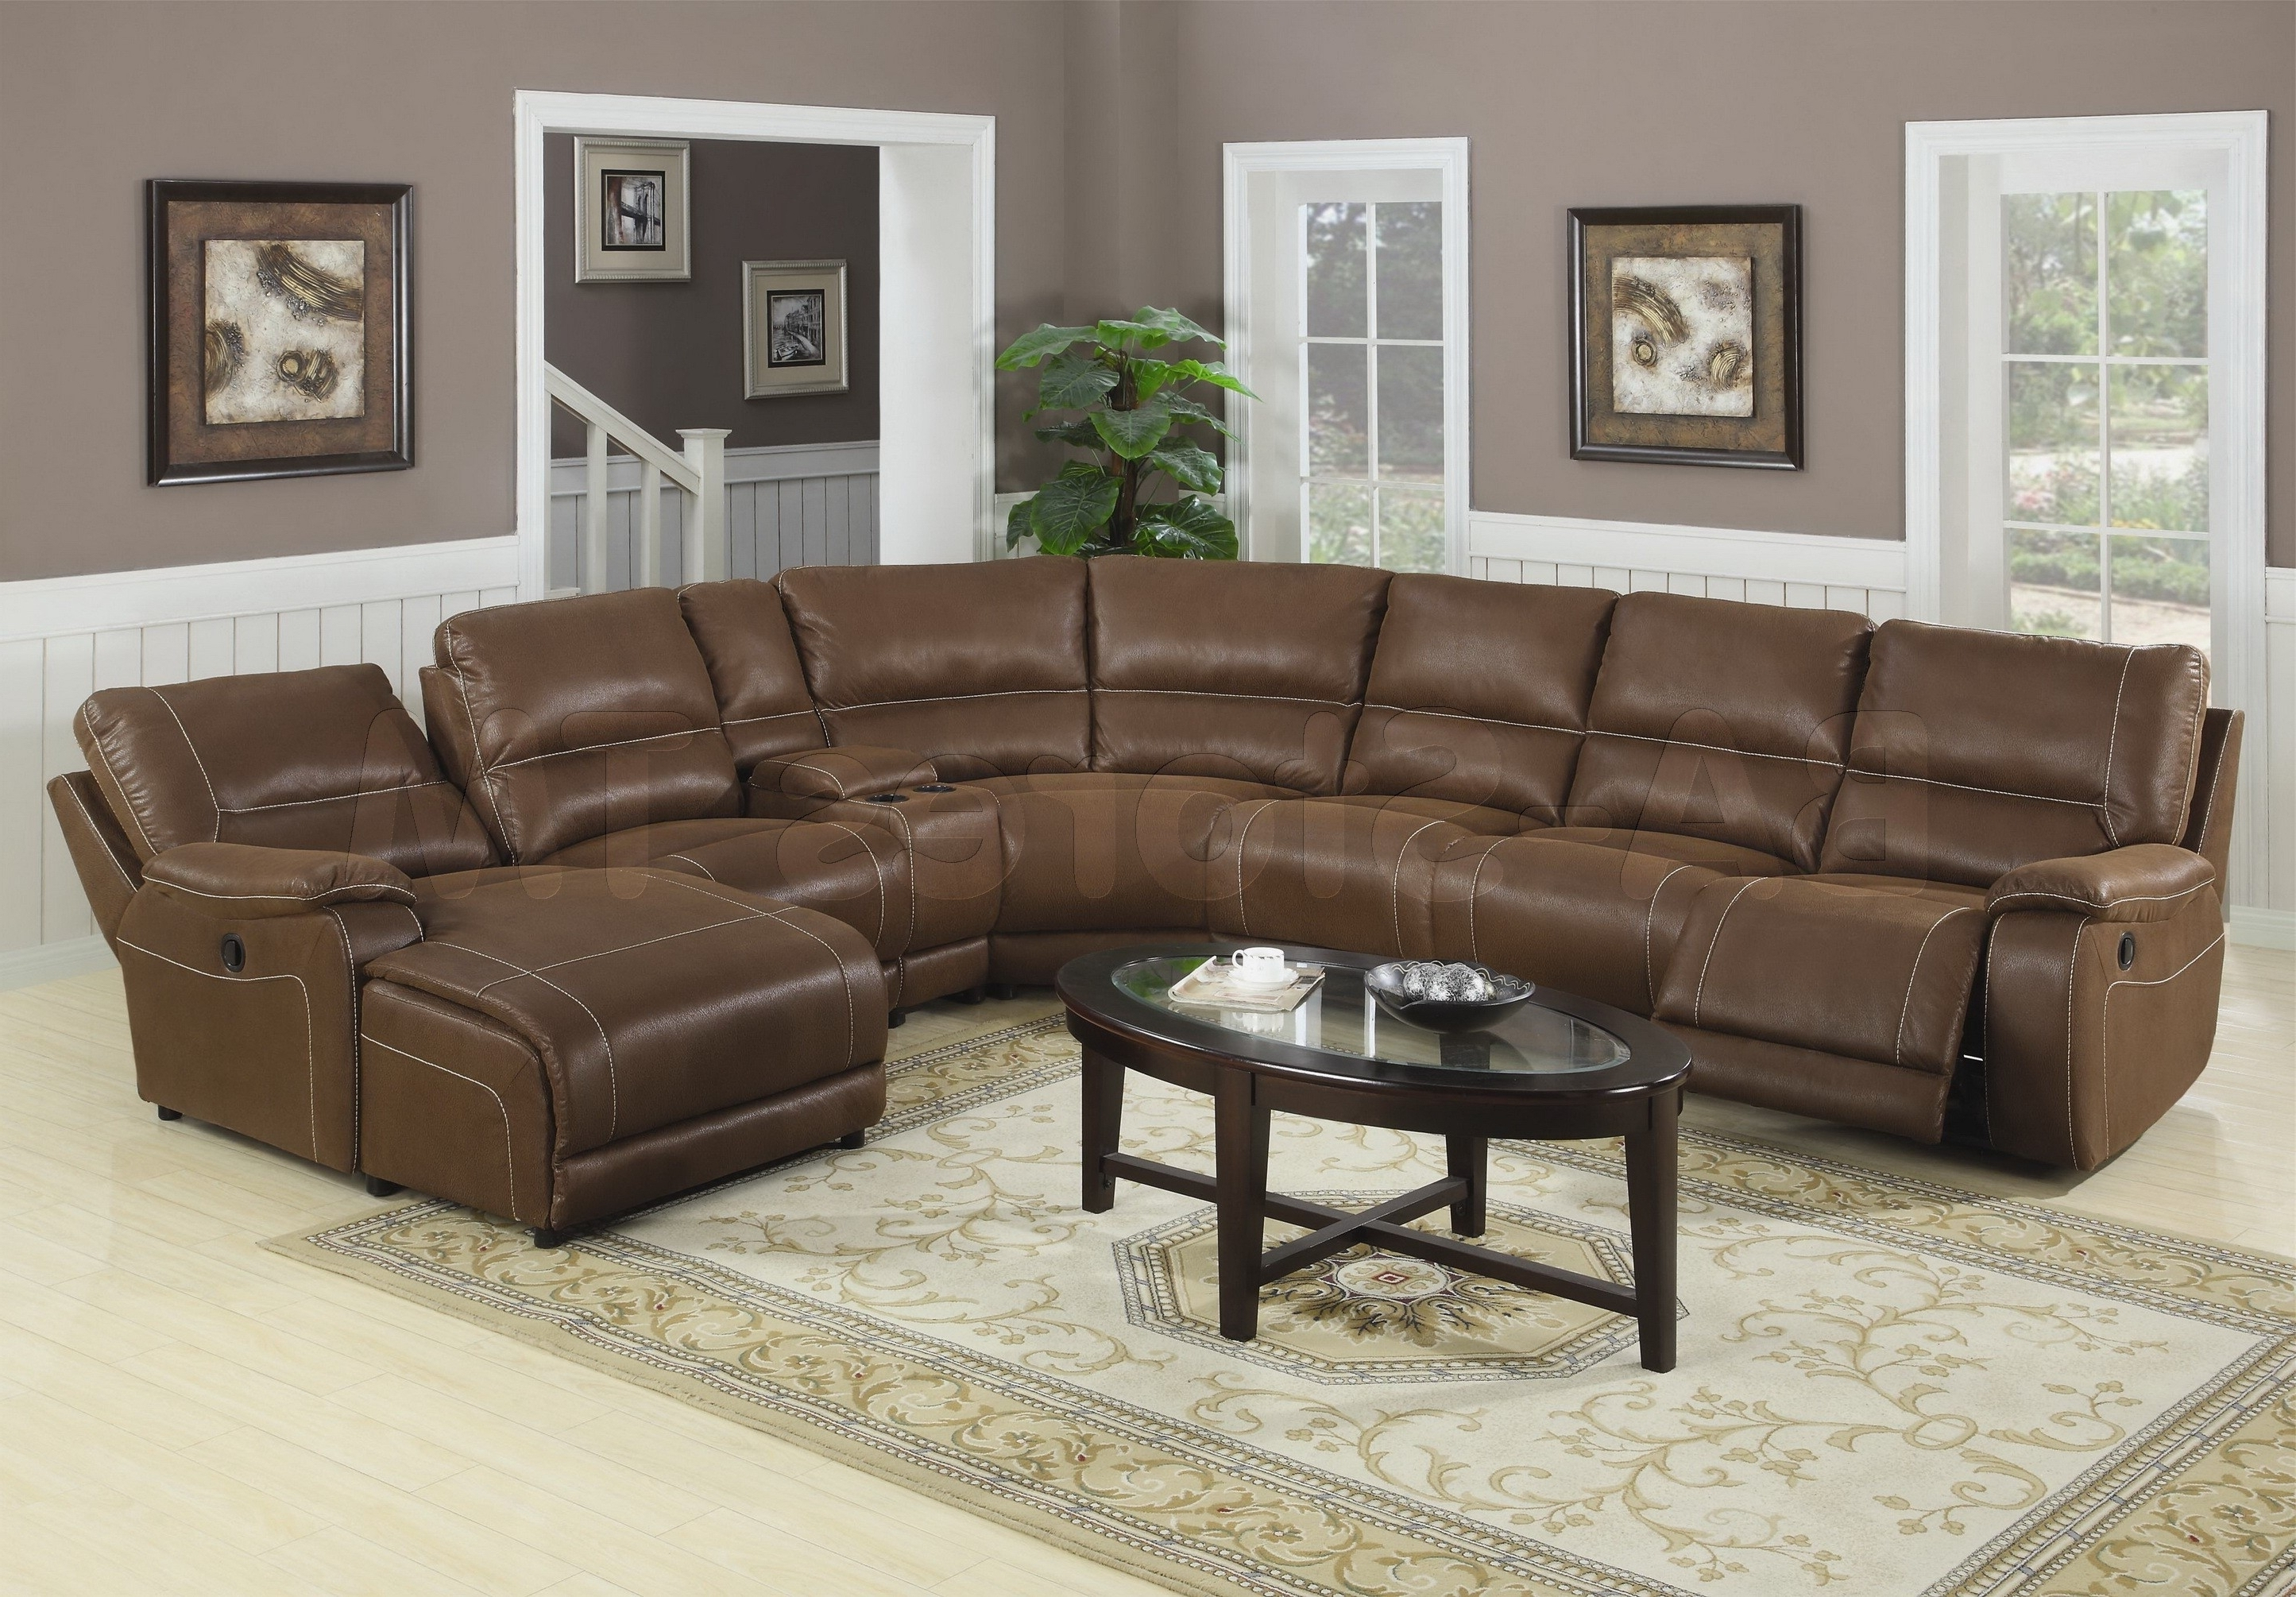 Okc Sectional Sofas With Well Known Unique Sectional Sofas Okc 21 With Additional Jonathan Louis (View 8 of 15)